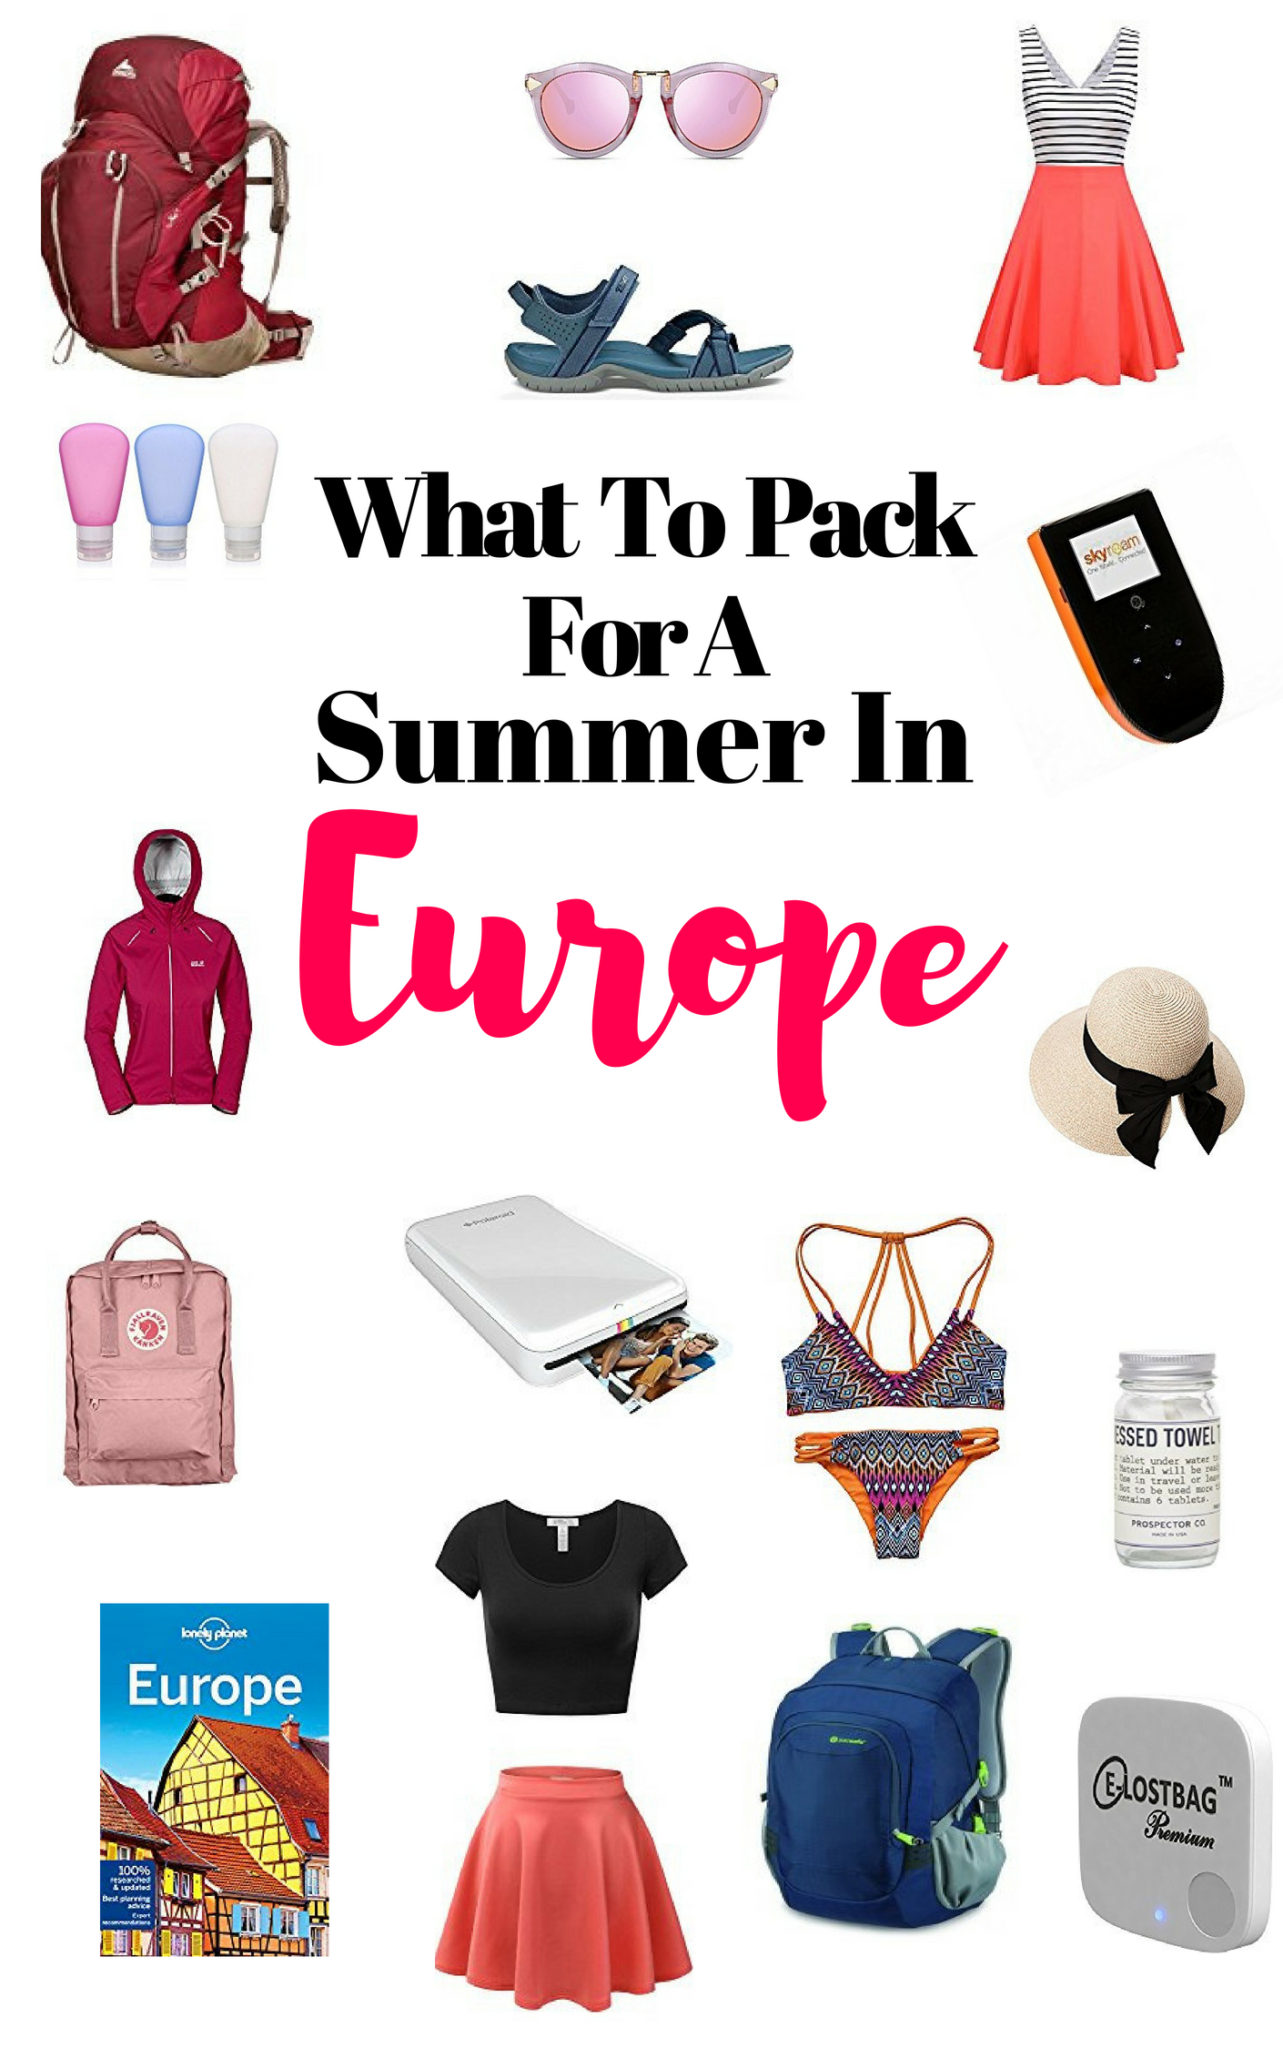 What To Pack For A Trip To Europe